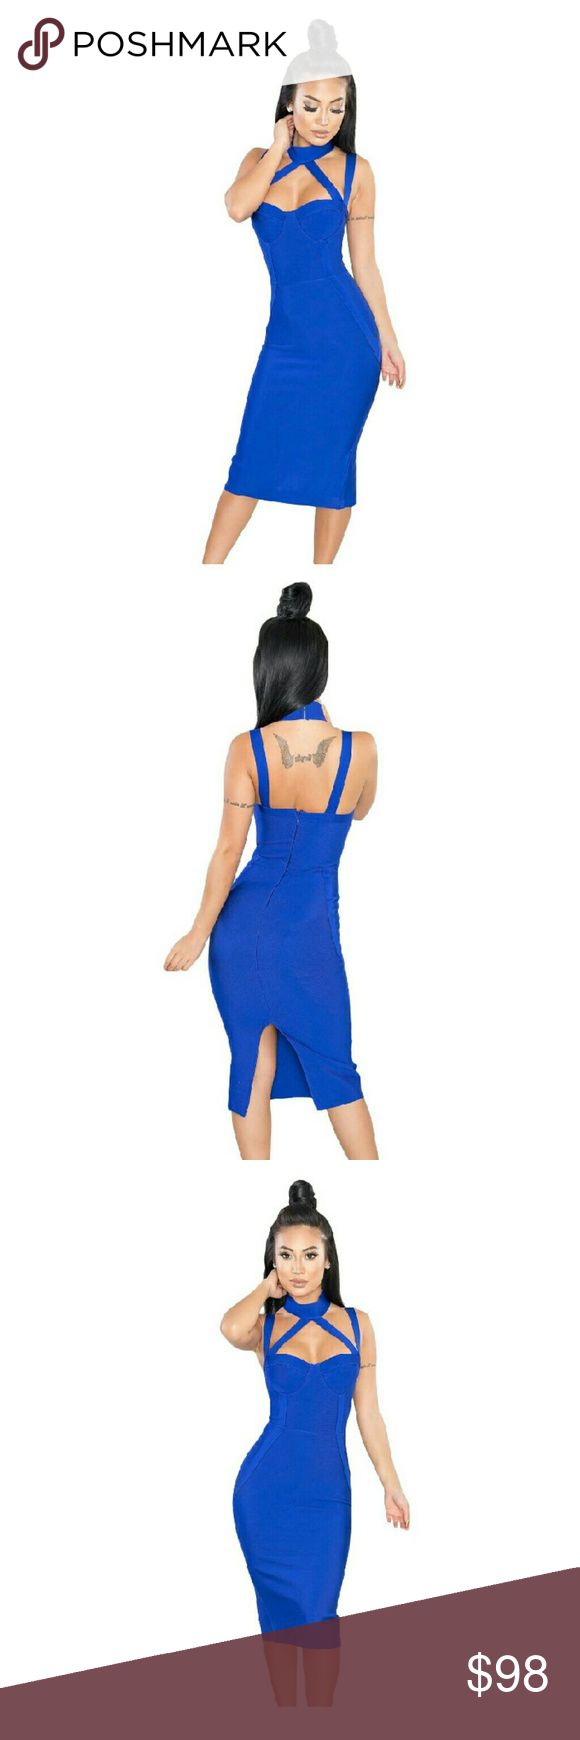 Camille Goddess Blue Bandage Dress Camille Goddess Blue Bandage Dress   This is the Goddess holiday party dress that everyone will be jealous of. It's up to you to share where you bought it. Plz comment if you'd like this in your size. This dress was sampled for the store and is ready to ship.   Large will fit a size 6/8 body frame  Length: Approx 83cm   Made with 100% Authentic Bandage Material  The Fabric of Celebrities : 90% Rayon 9% Nylon 1% Spandex. The form is supported by bust cups…